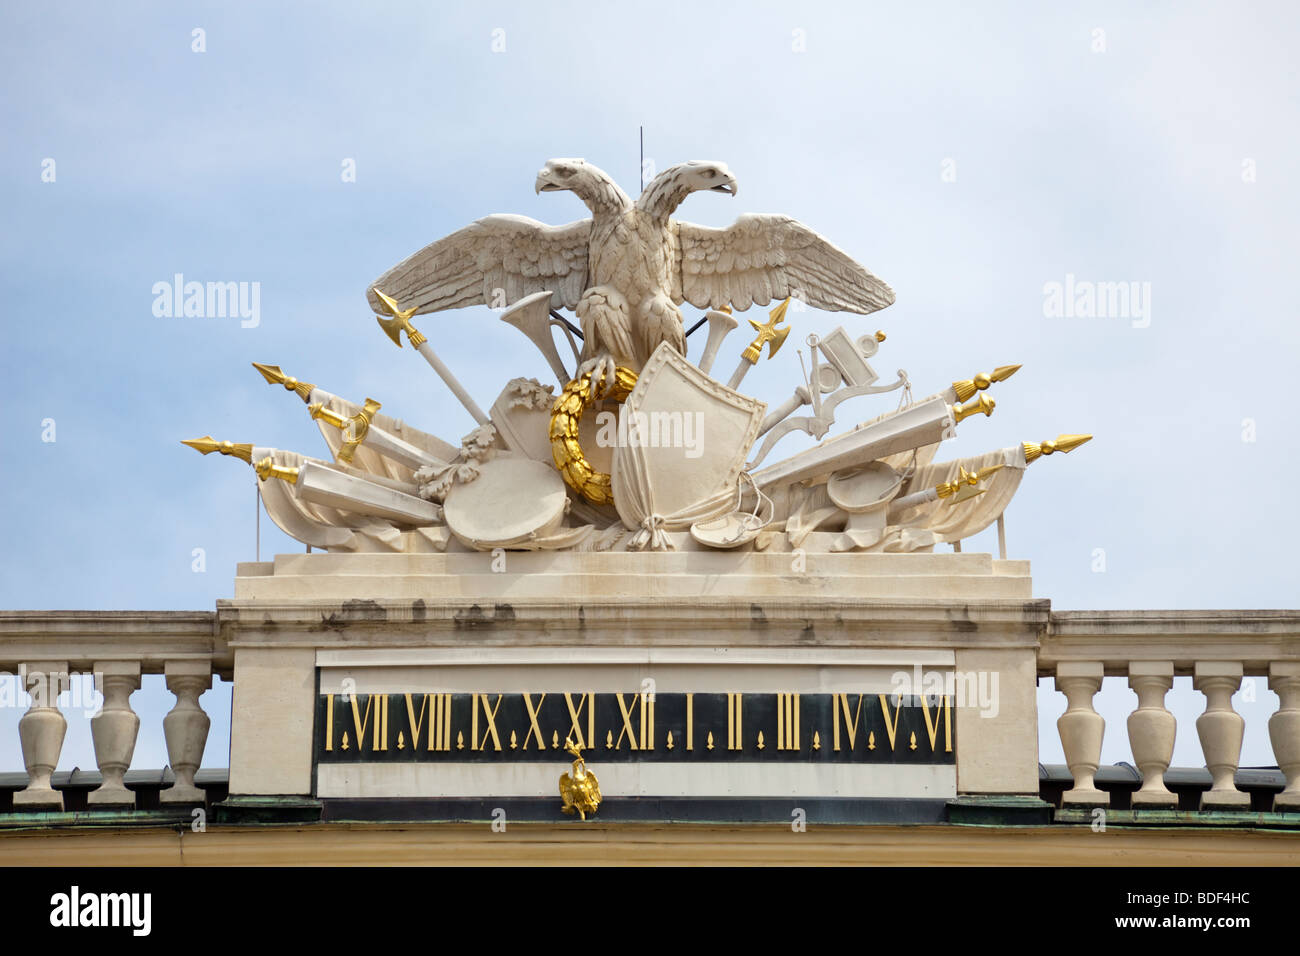 detail of coat of arms and clock at top of central unit, Schönbrunn Palace, Vienna, Austria - Stock Image